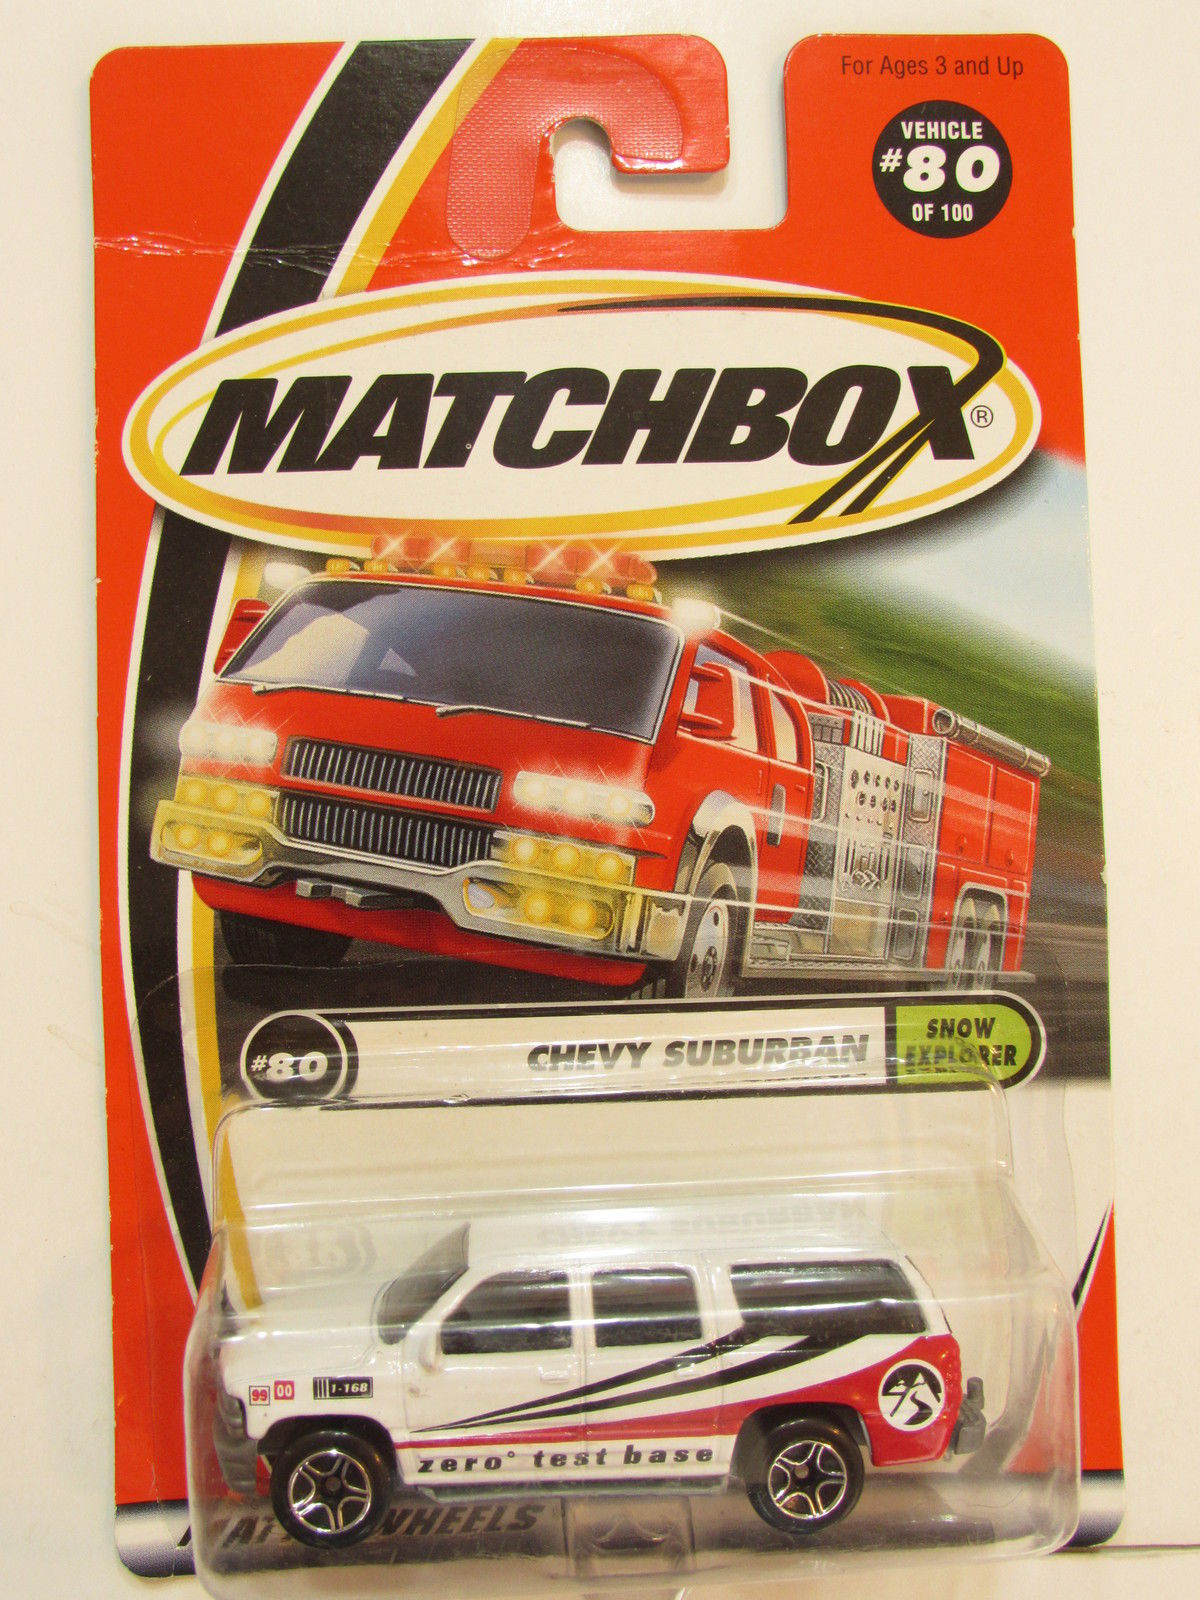 MATCHBOX 2000 #80 OF 100 CHEVROLET SUBURBAN - SHOW EXPLORER